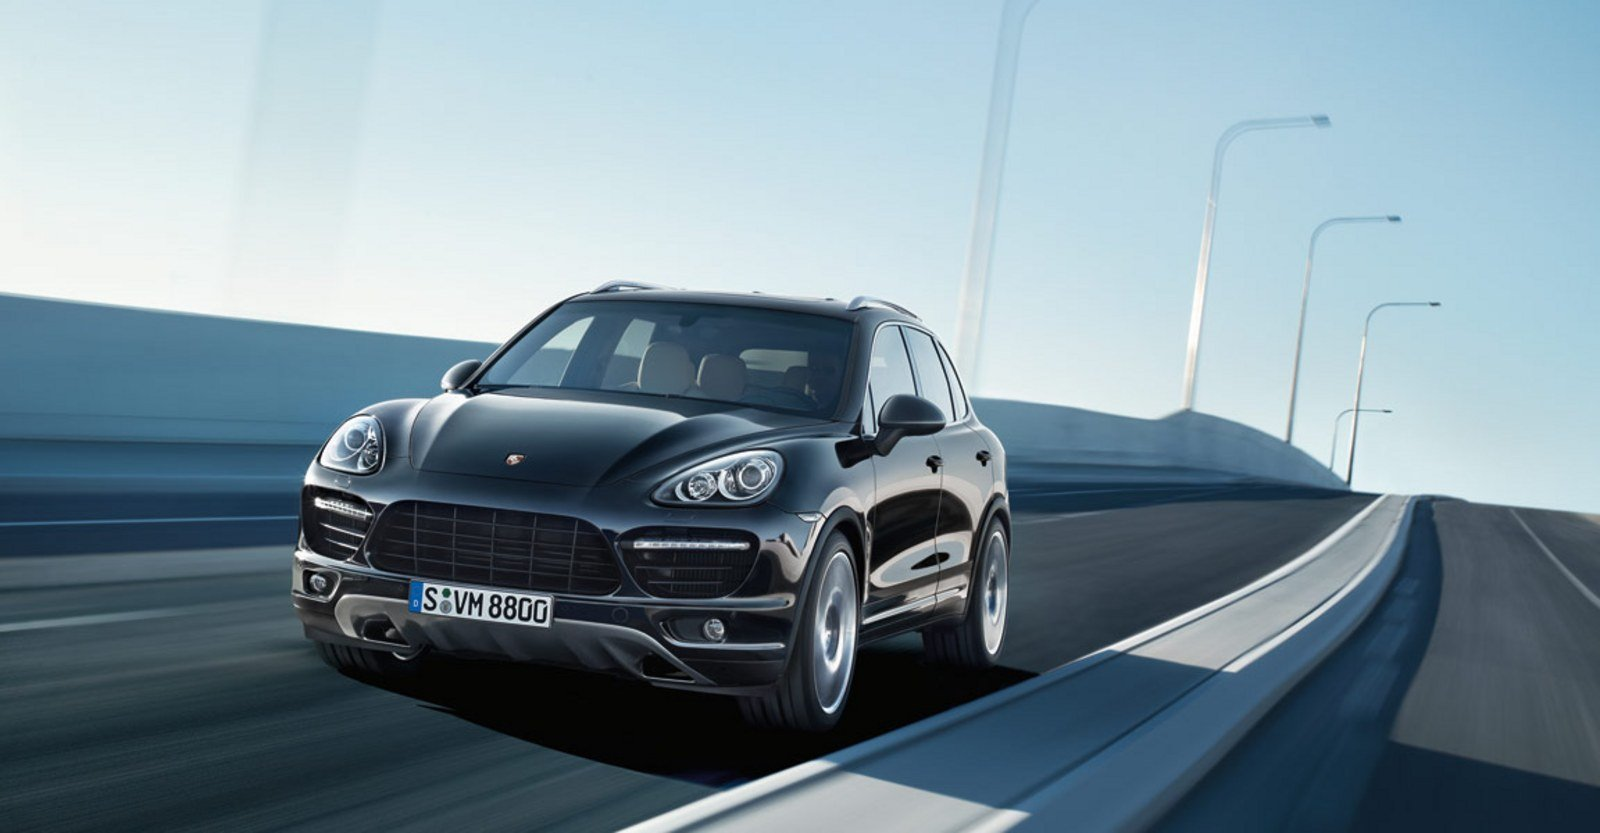 2011 porsche cayenne turbo review top speed. Black Bedroom Furniture Sets. Home Design Ideas